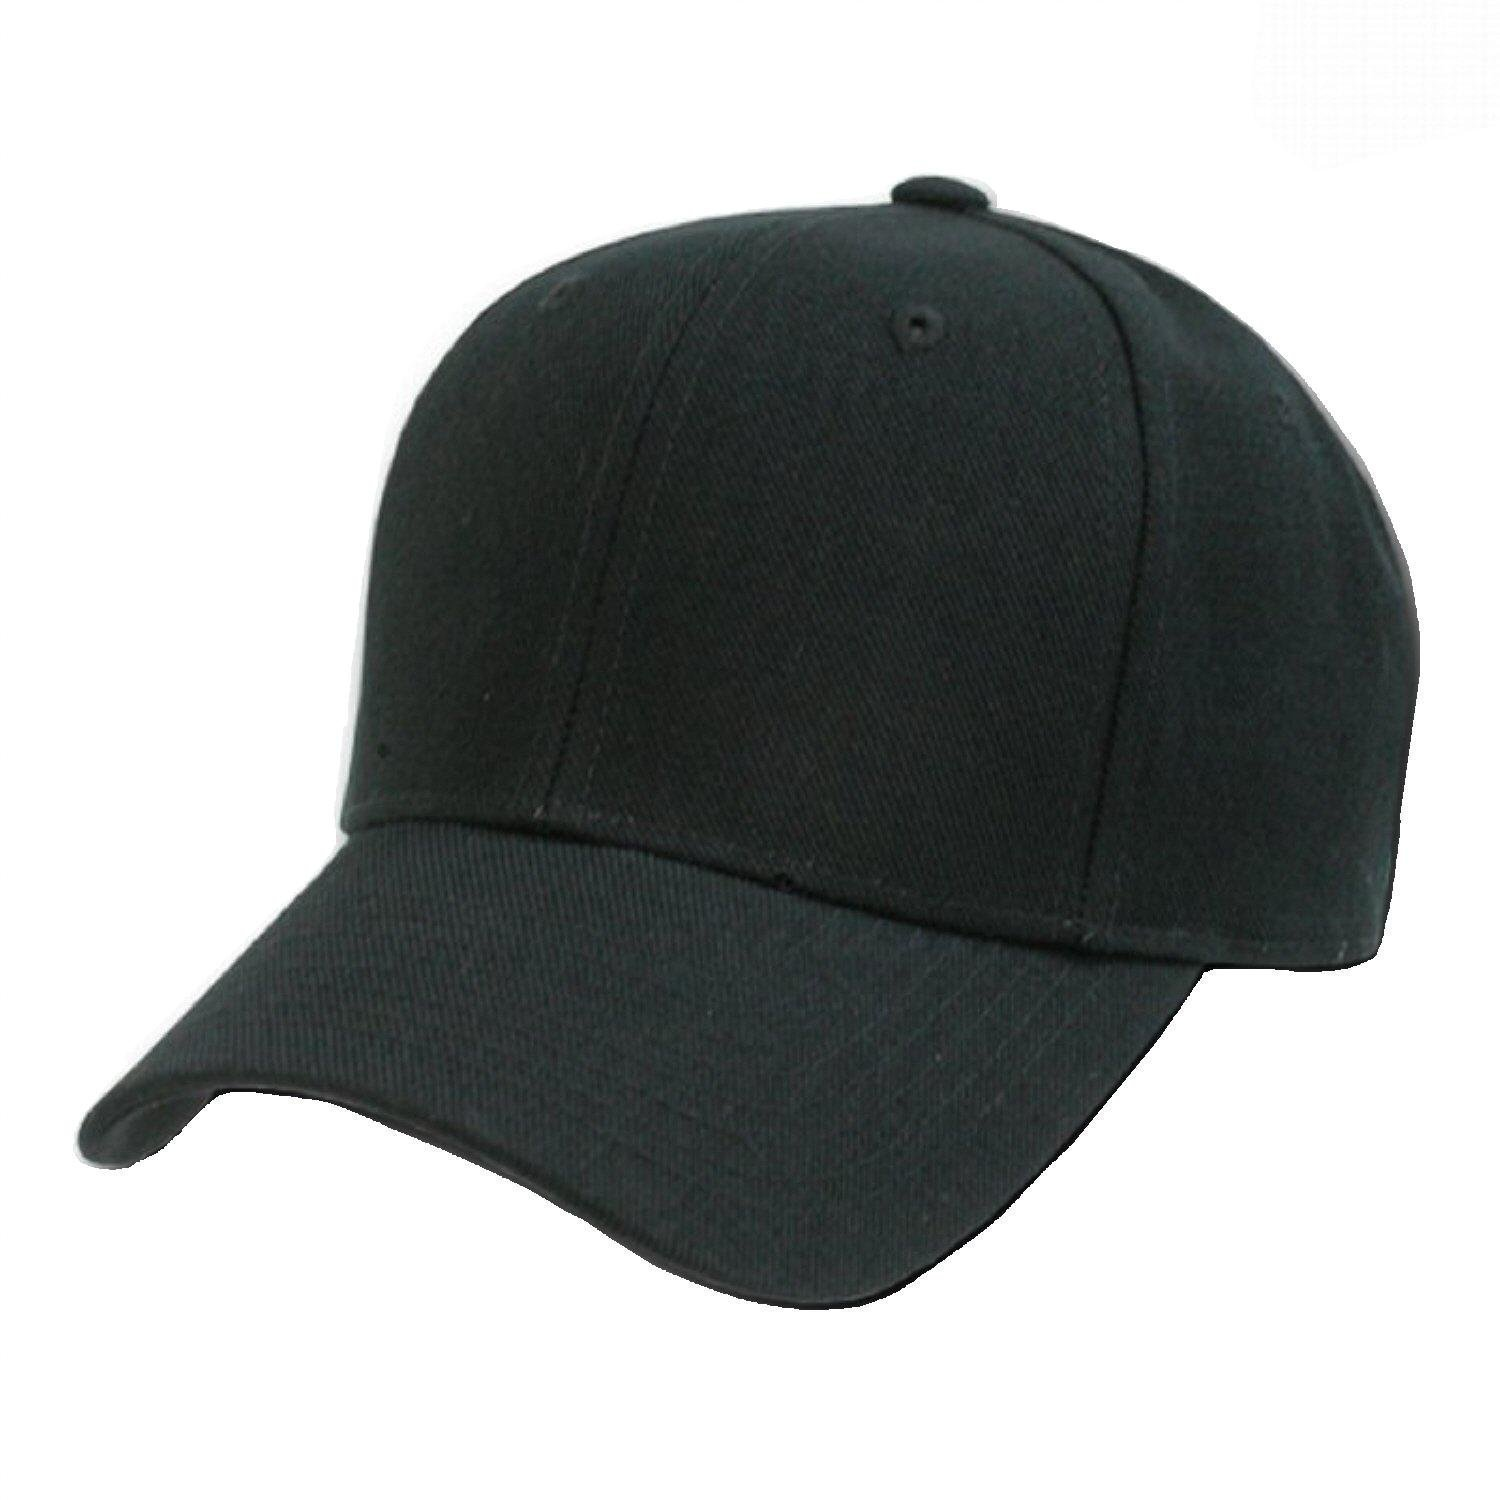 e6c73445d23 plain baseball cap blank hat solid color velcro adjustable 13 colors (black)   Amazon.in  Clothing   Accessories